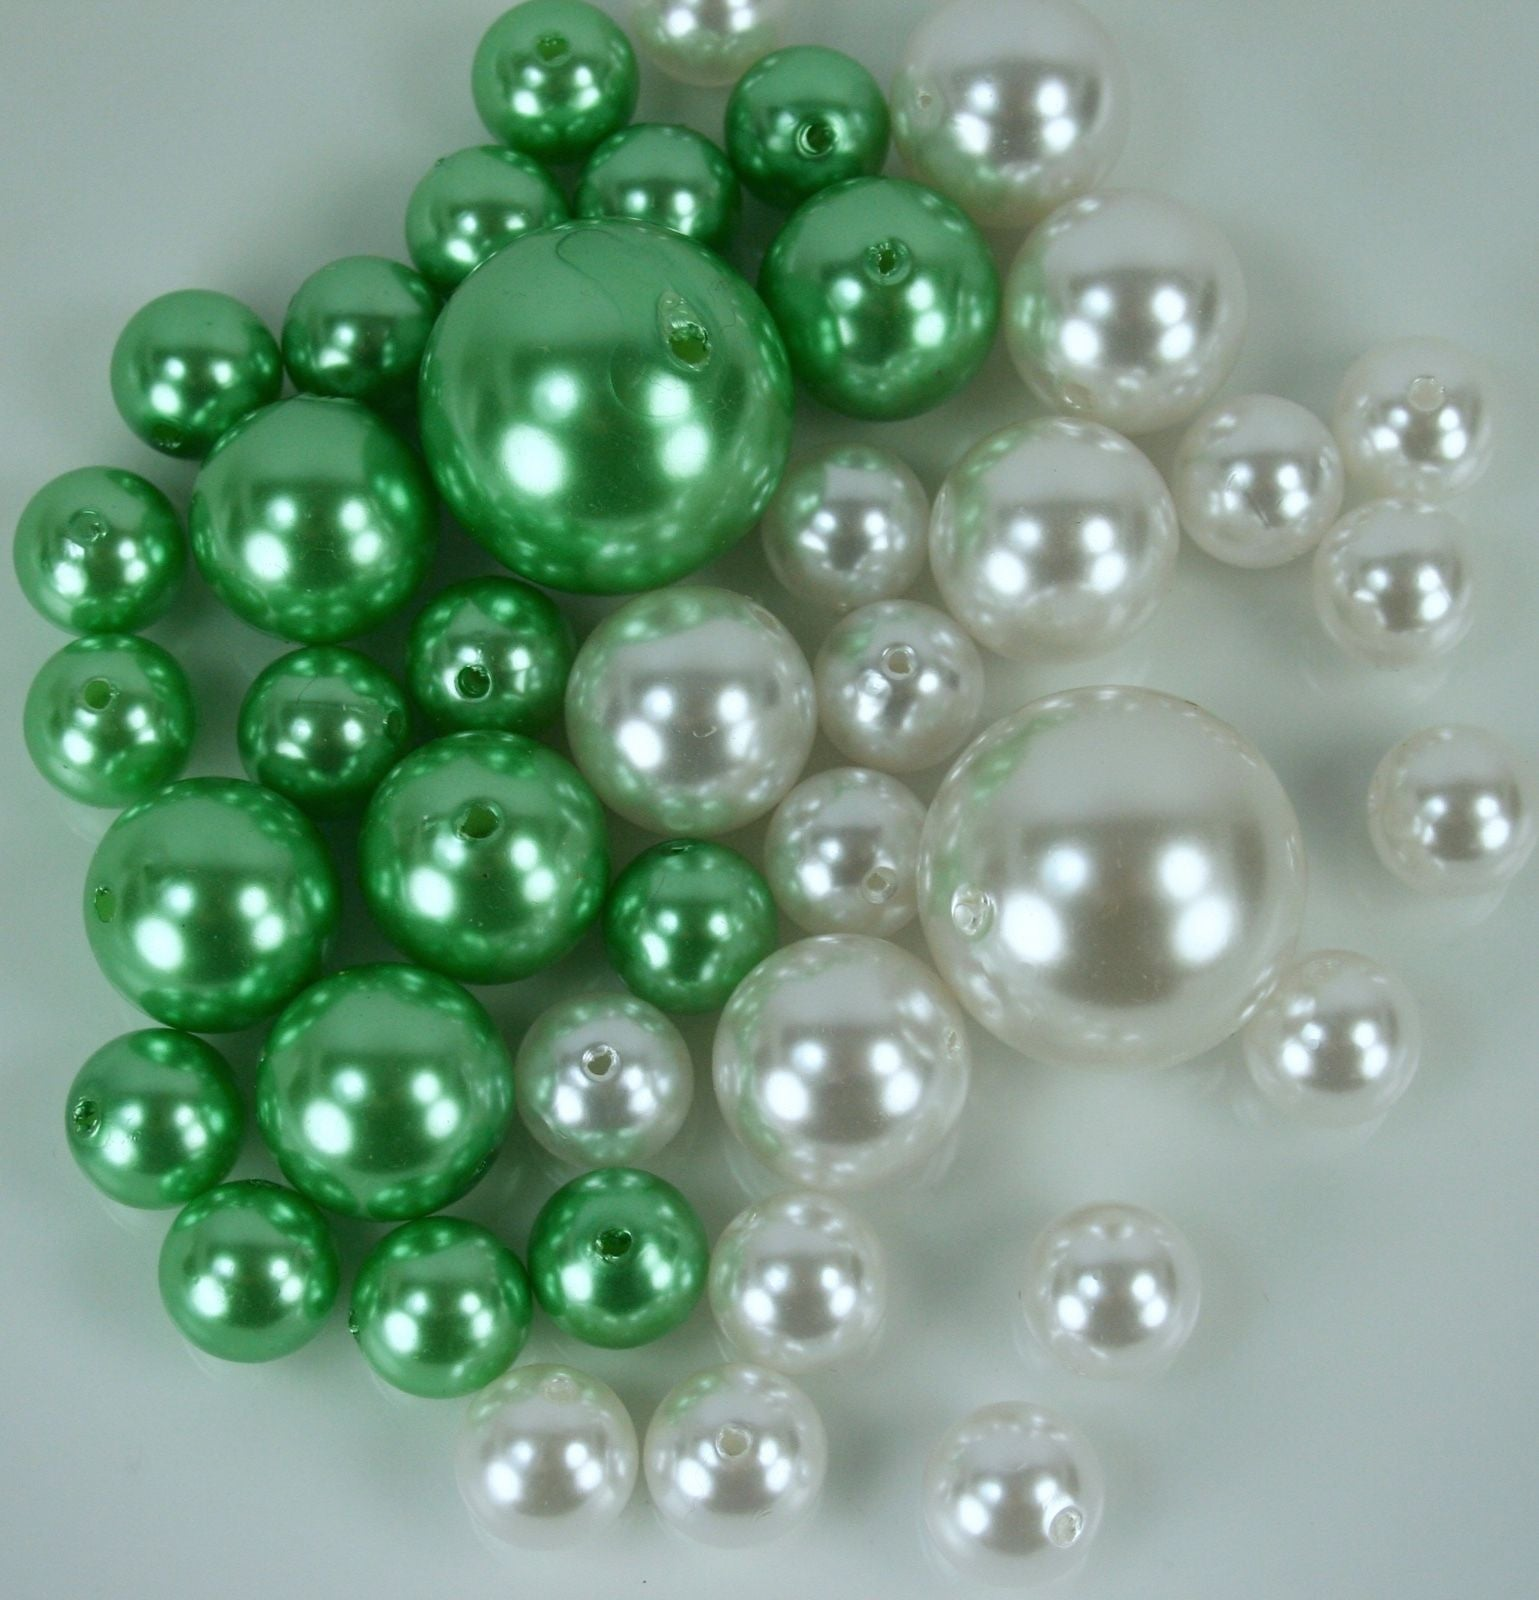 christy in with sale beads order bulk undertaken looking noticeboard for connect carolin sattur thread silk earing resellers